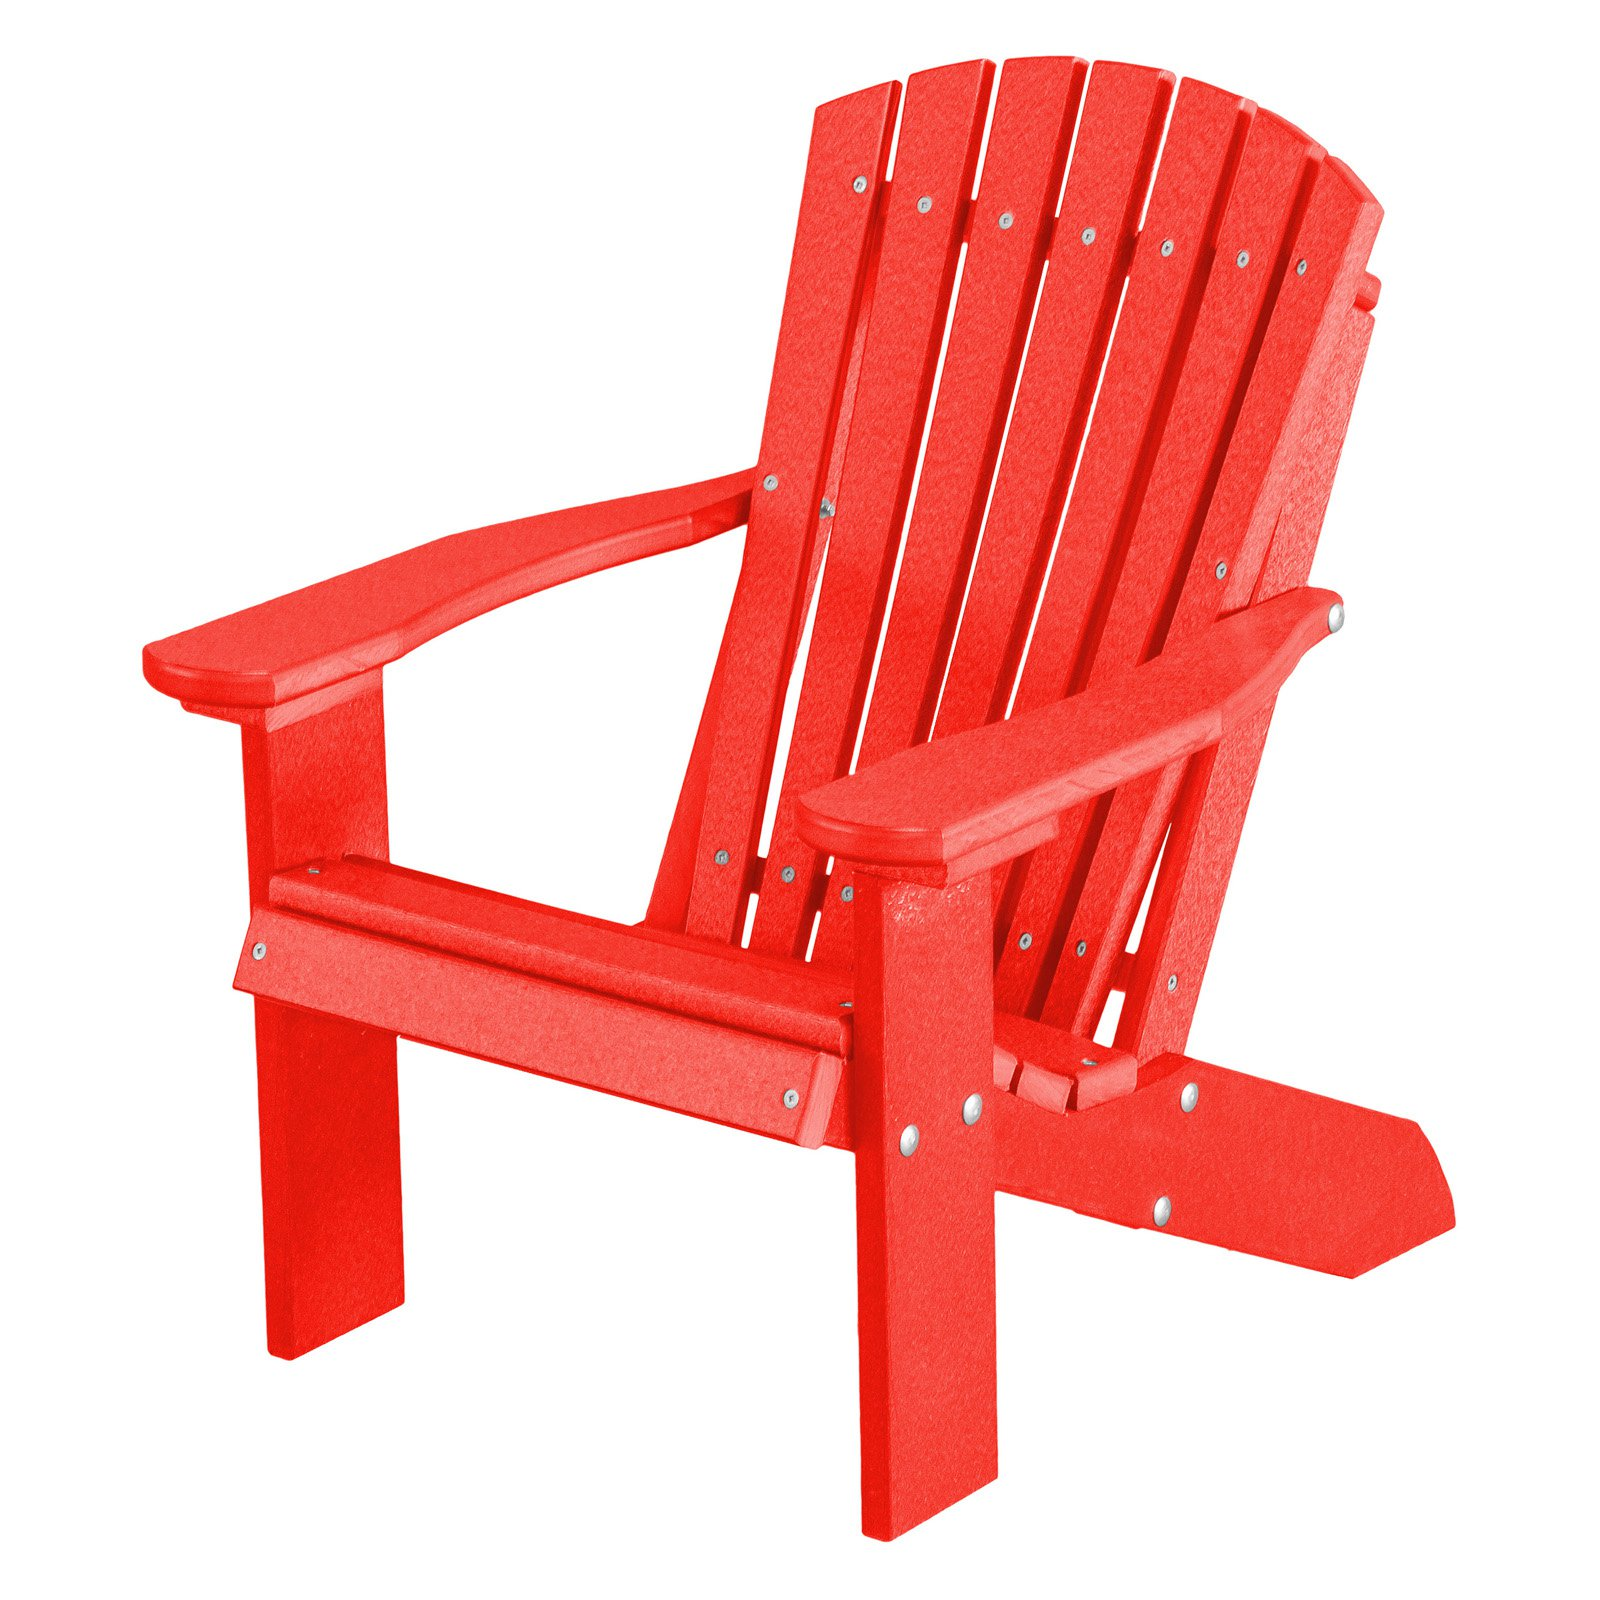 Terrific Outdoor Wildridge Heritage Childrens Adirondack Chair Andrewgaddart Wooden Chair Designs For Living Room Andrewgaddartcom